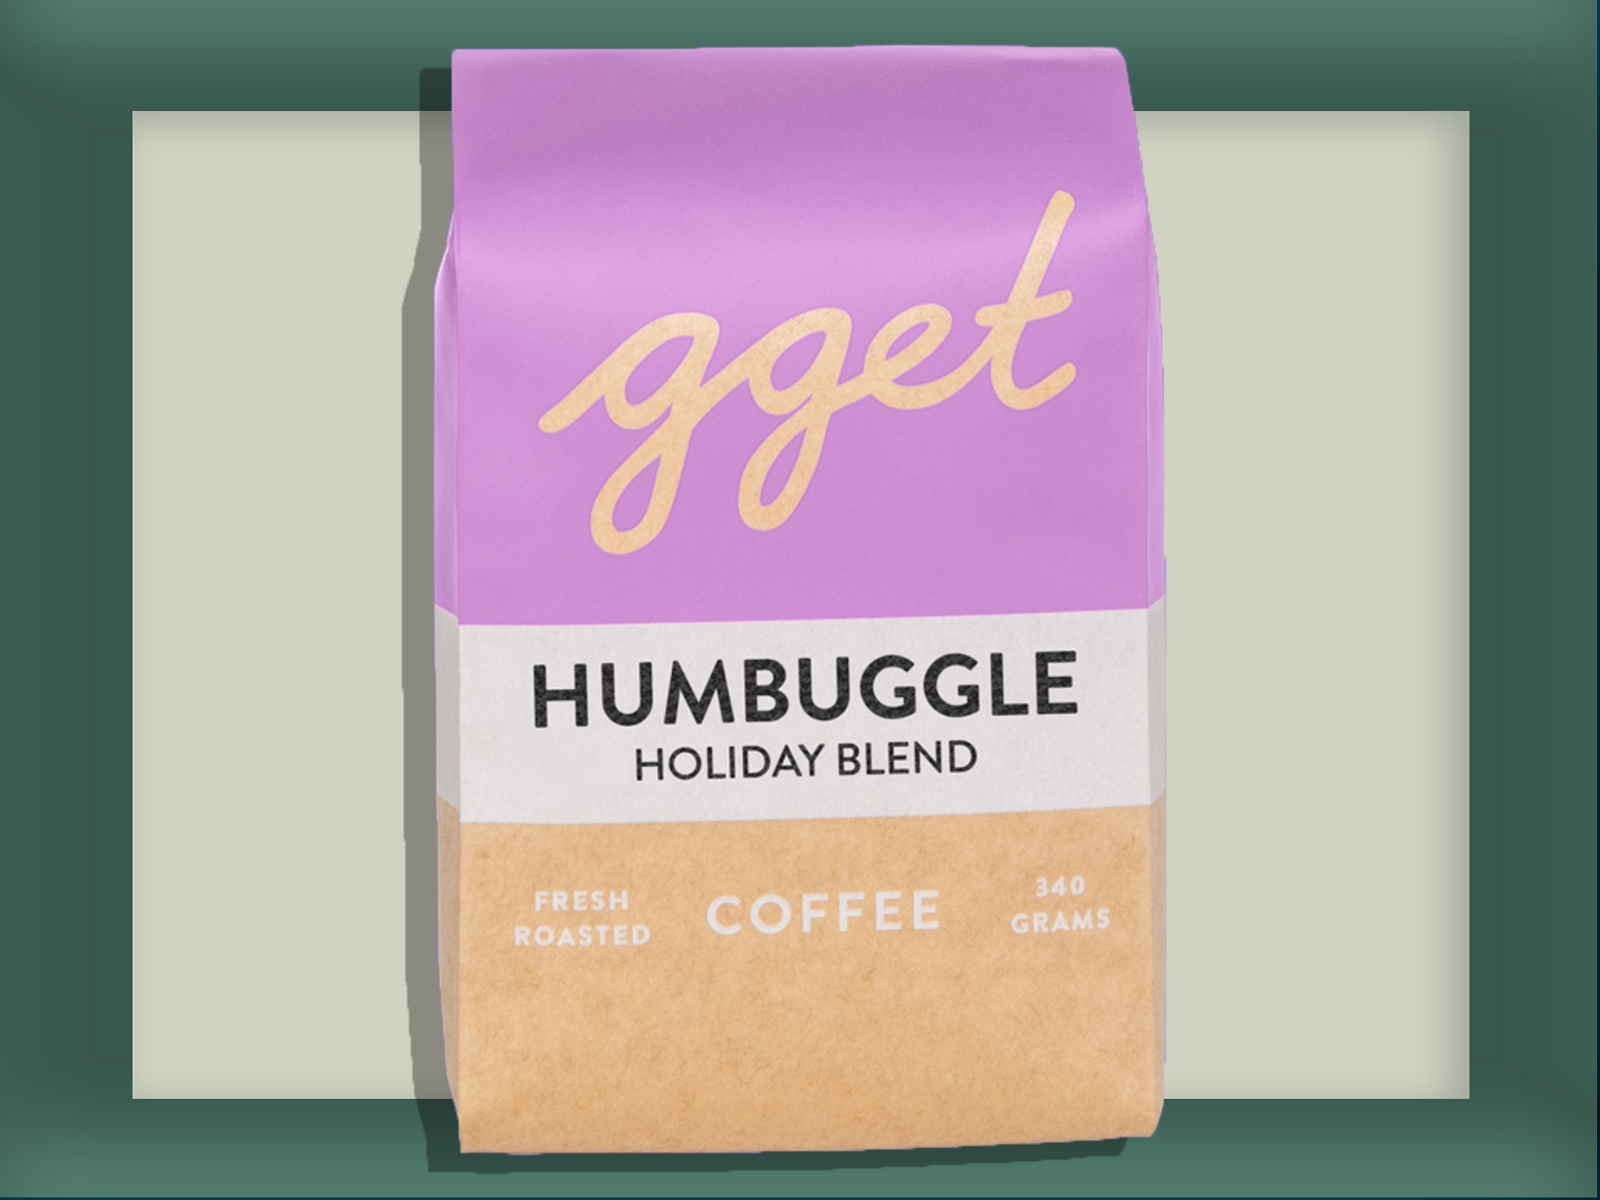 Coffee Gifts gget humbuggle